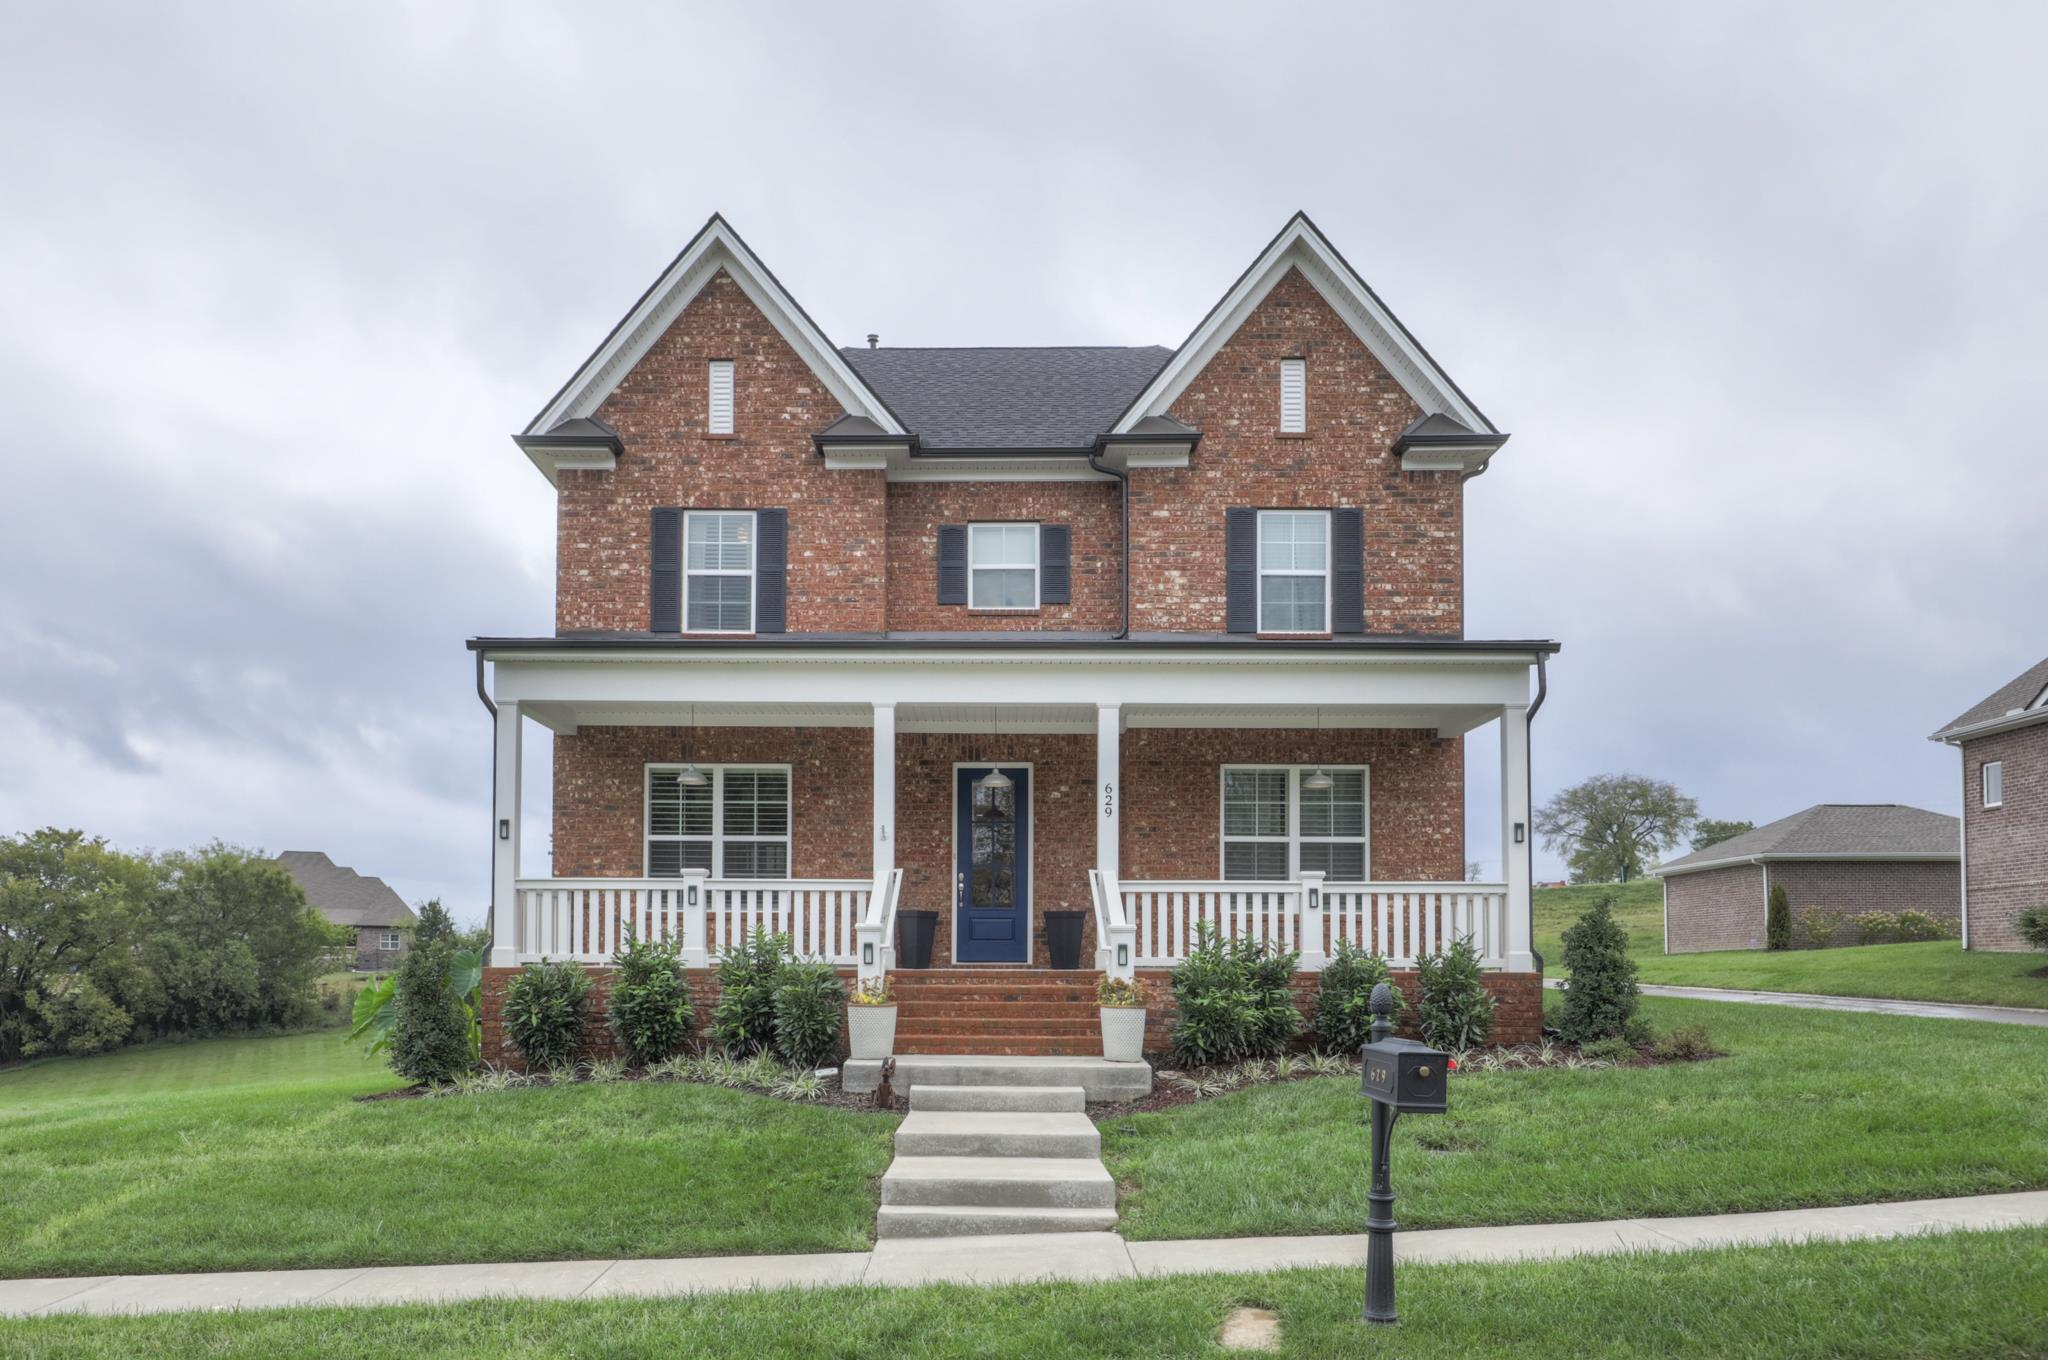 629 Vickery Park Drive, Nolensville, Tennessee